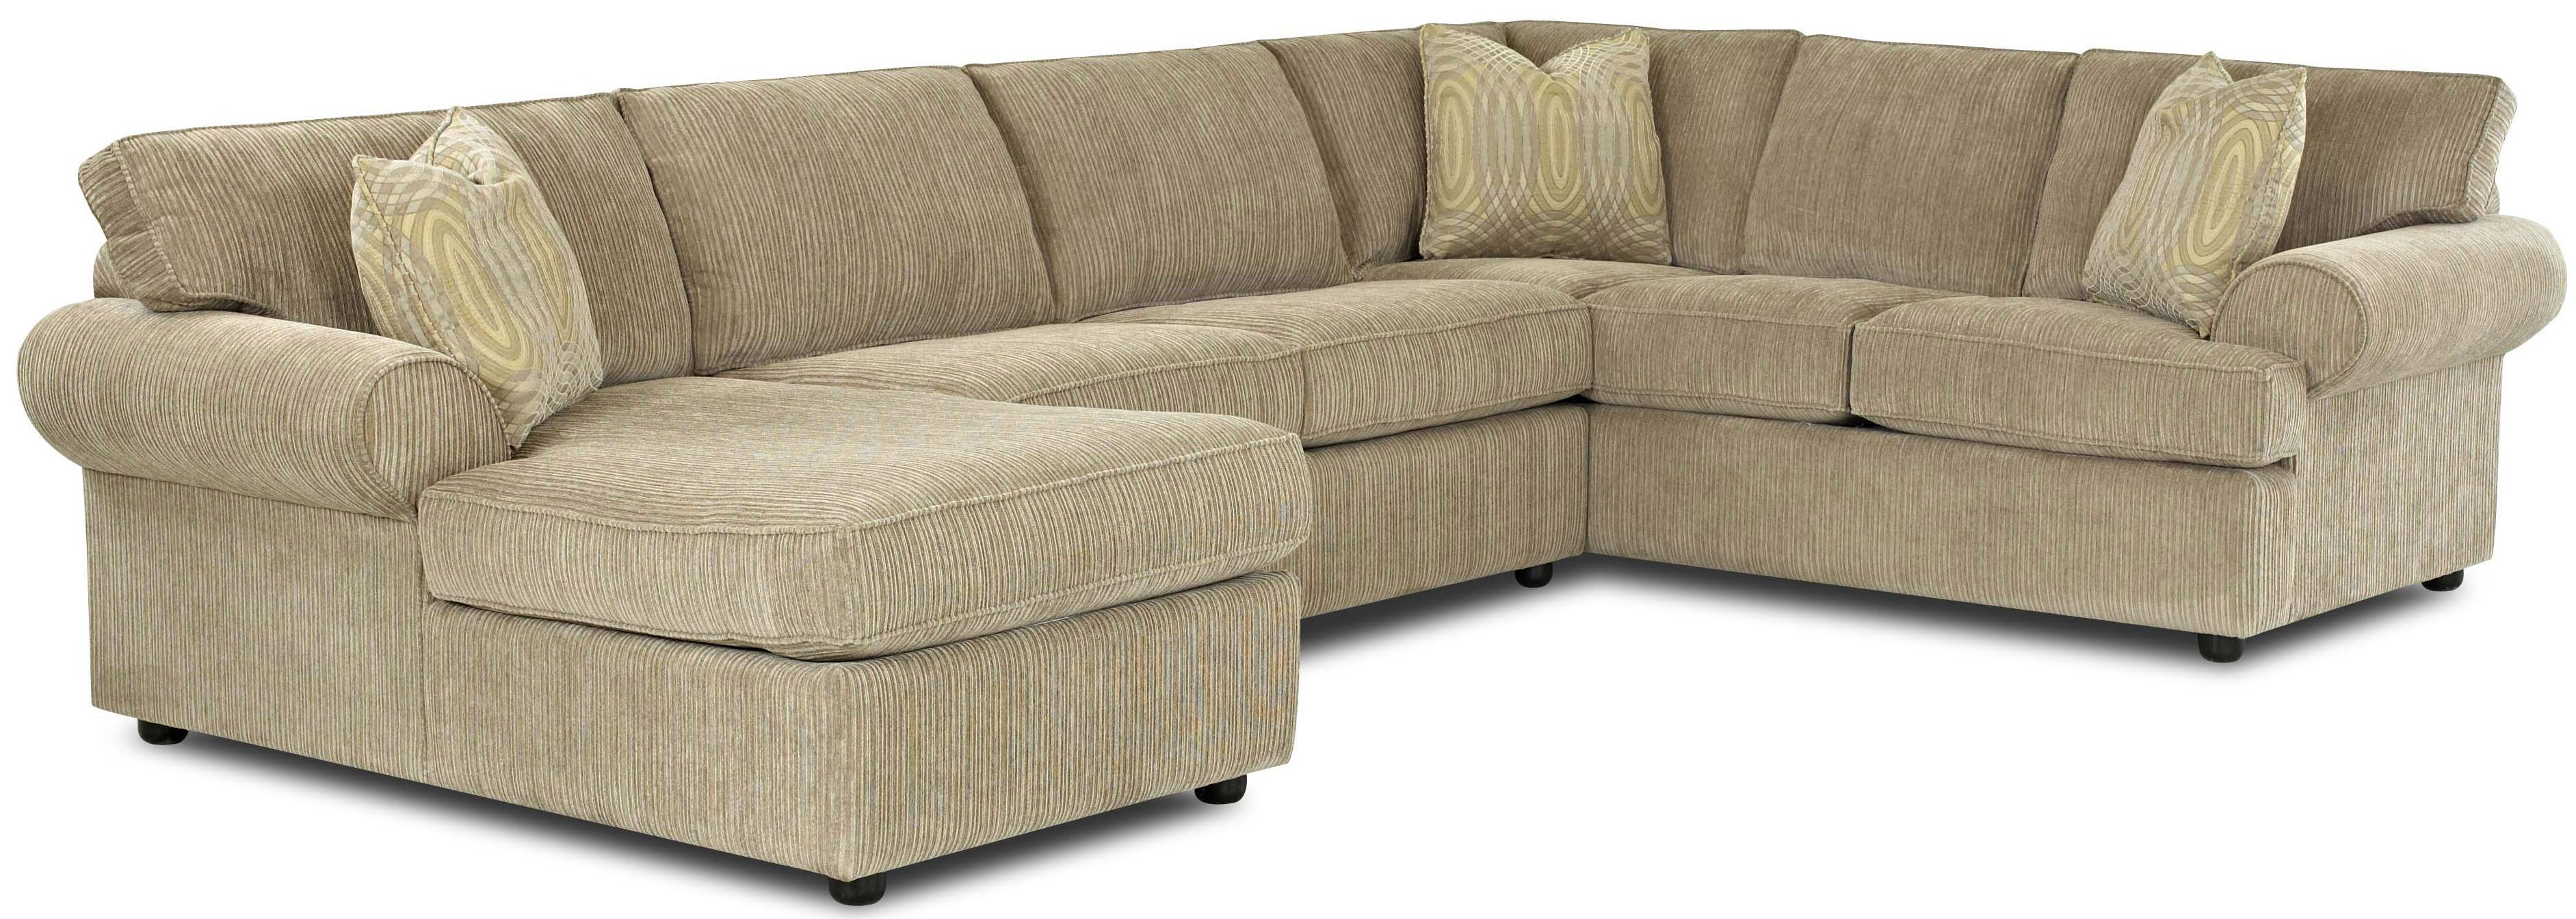 Klaussner Julington Transitional Sectional Sofa with